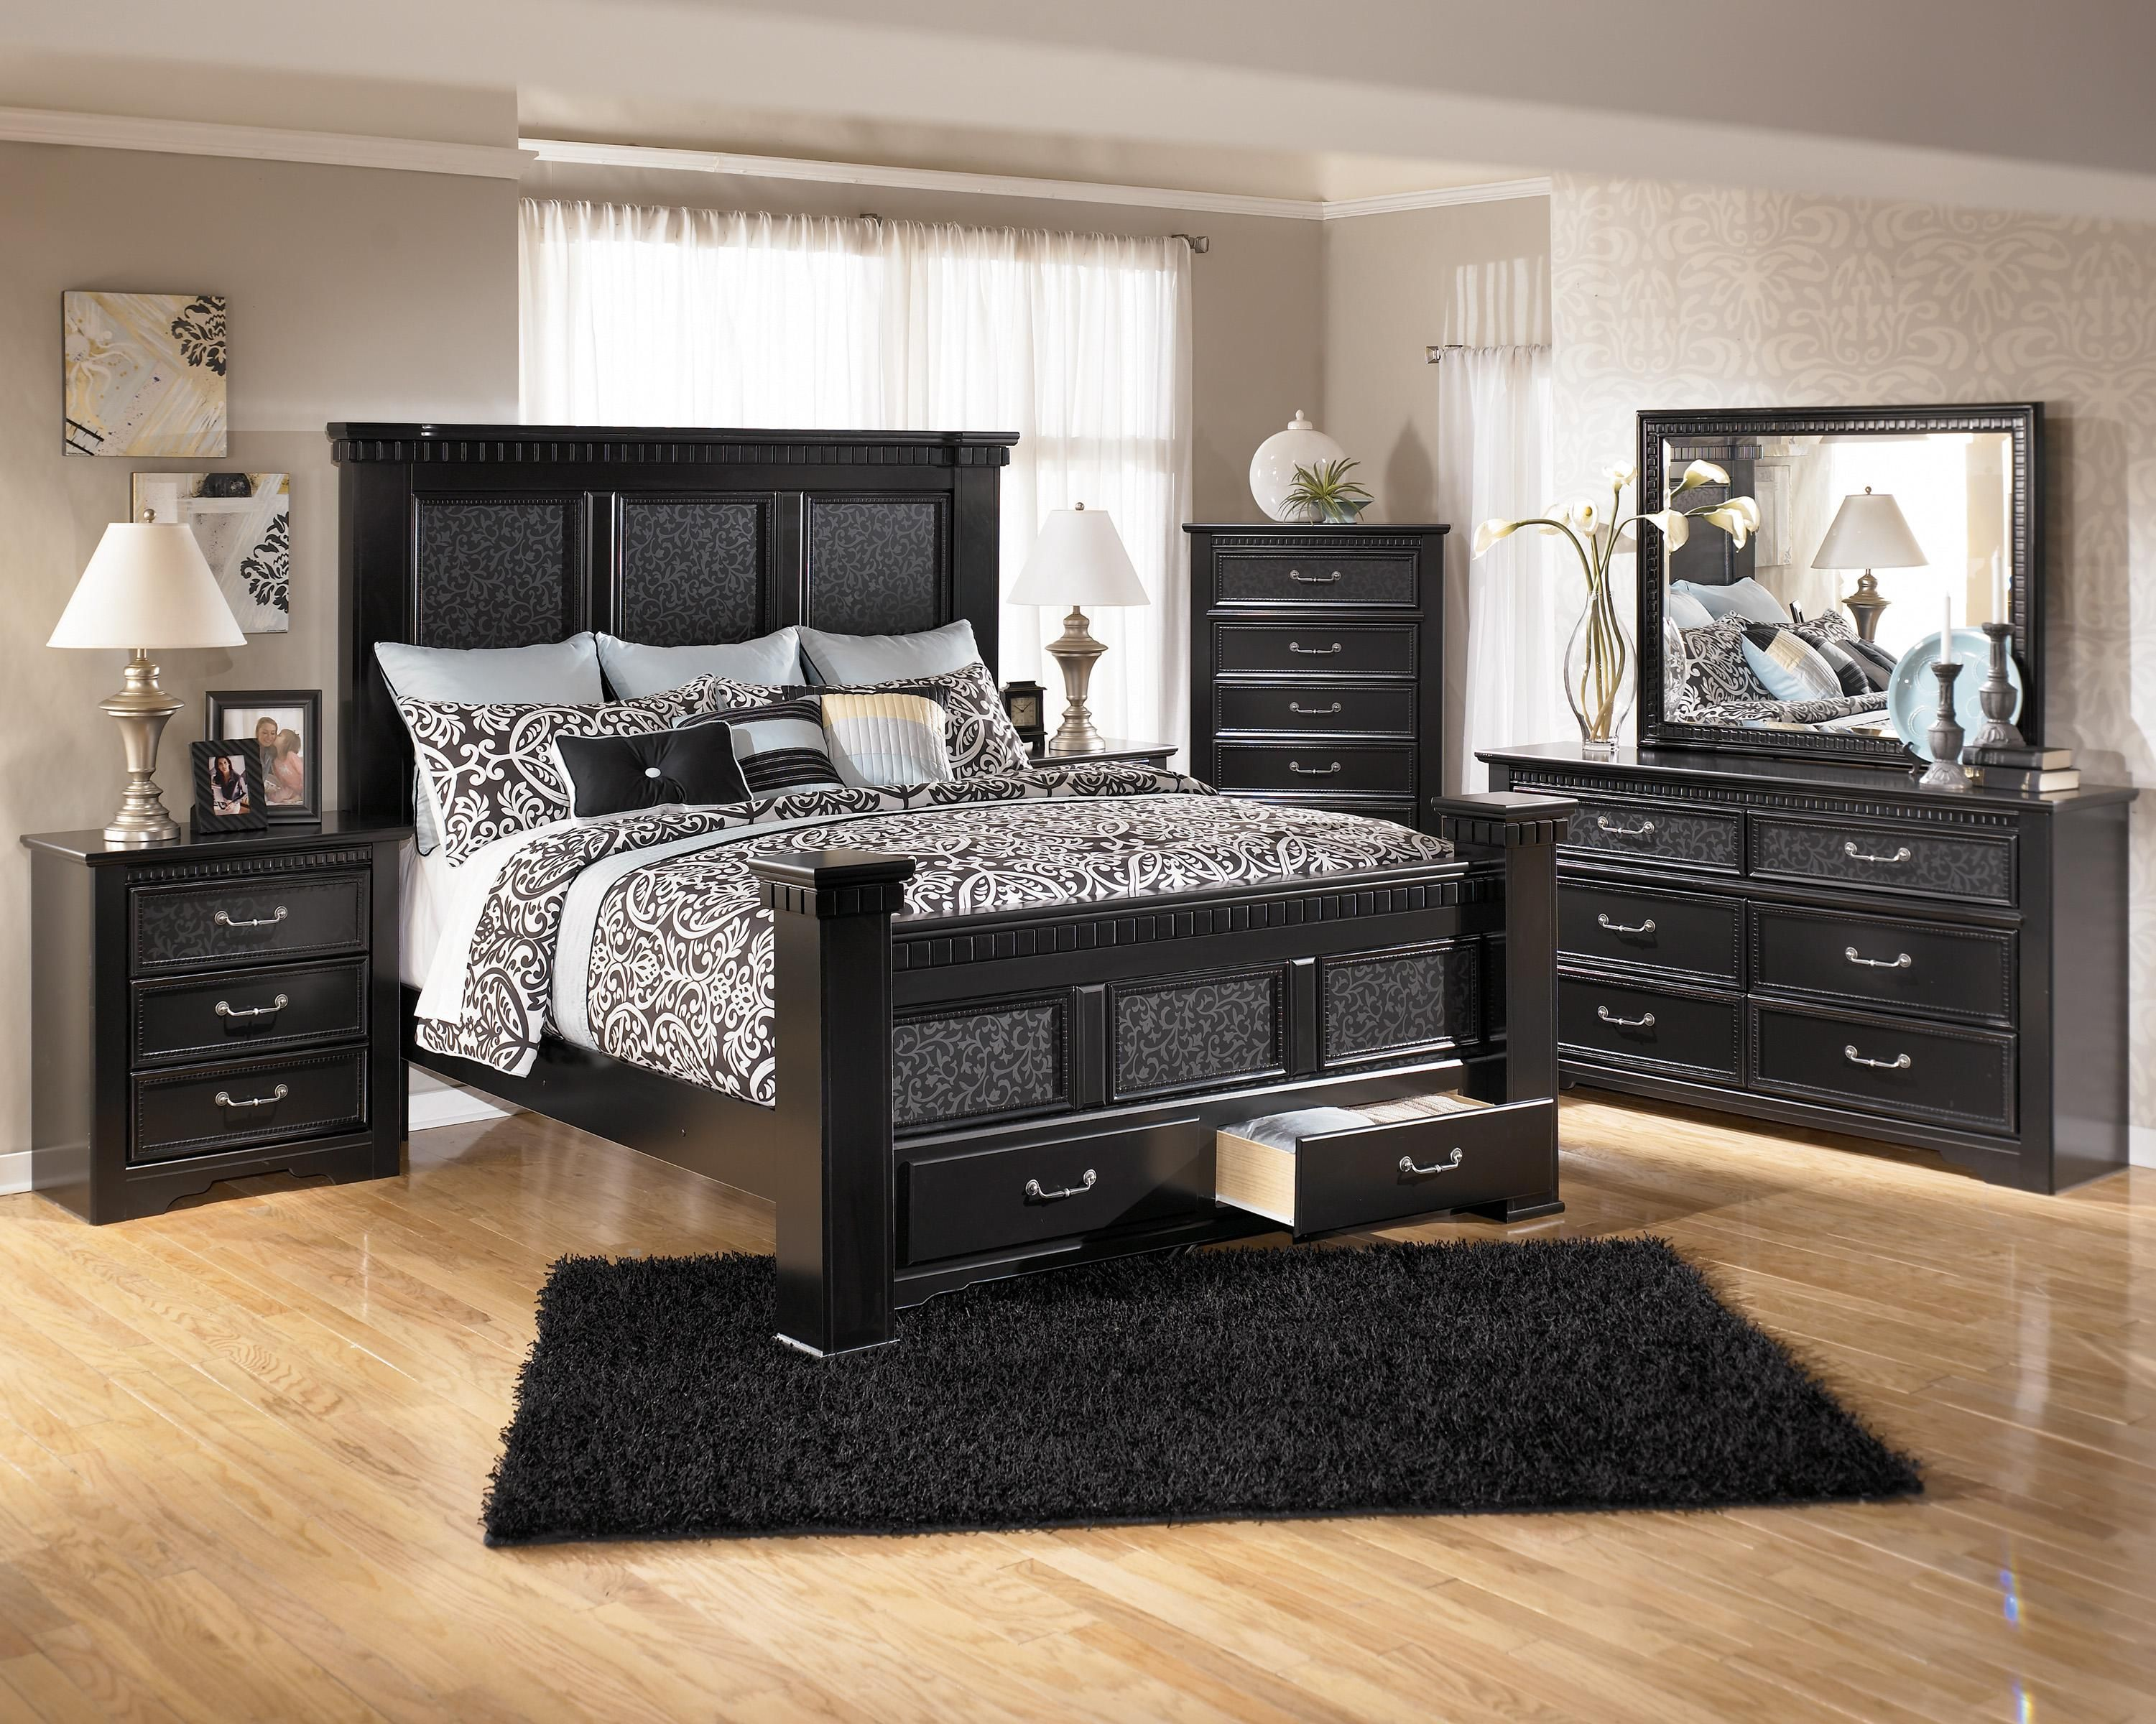 how what affects furniture this ideas saying and are experts black bedroom about you